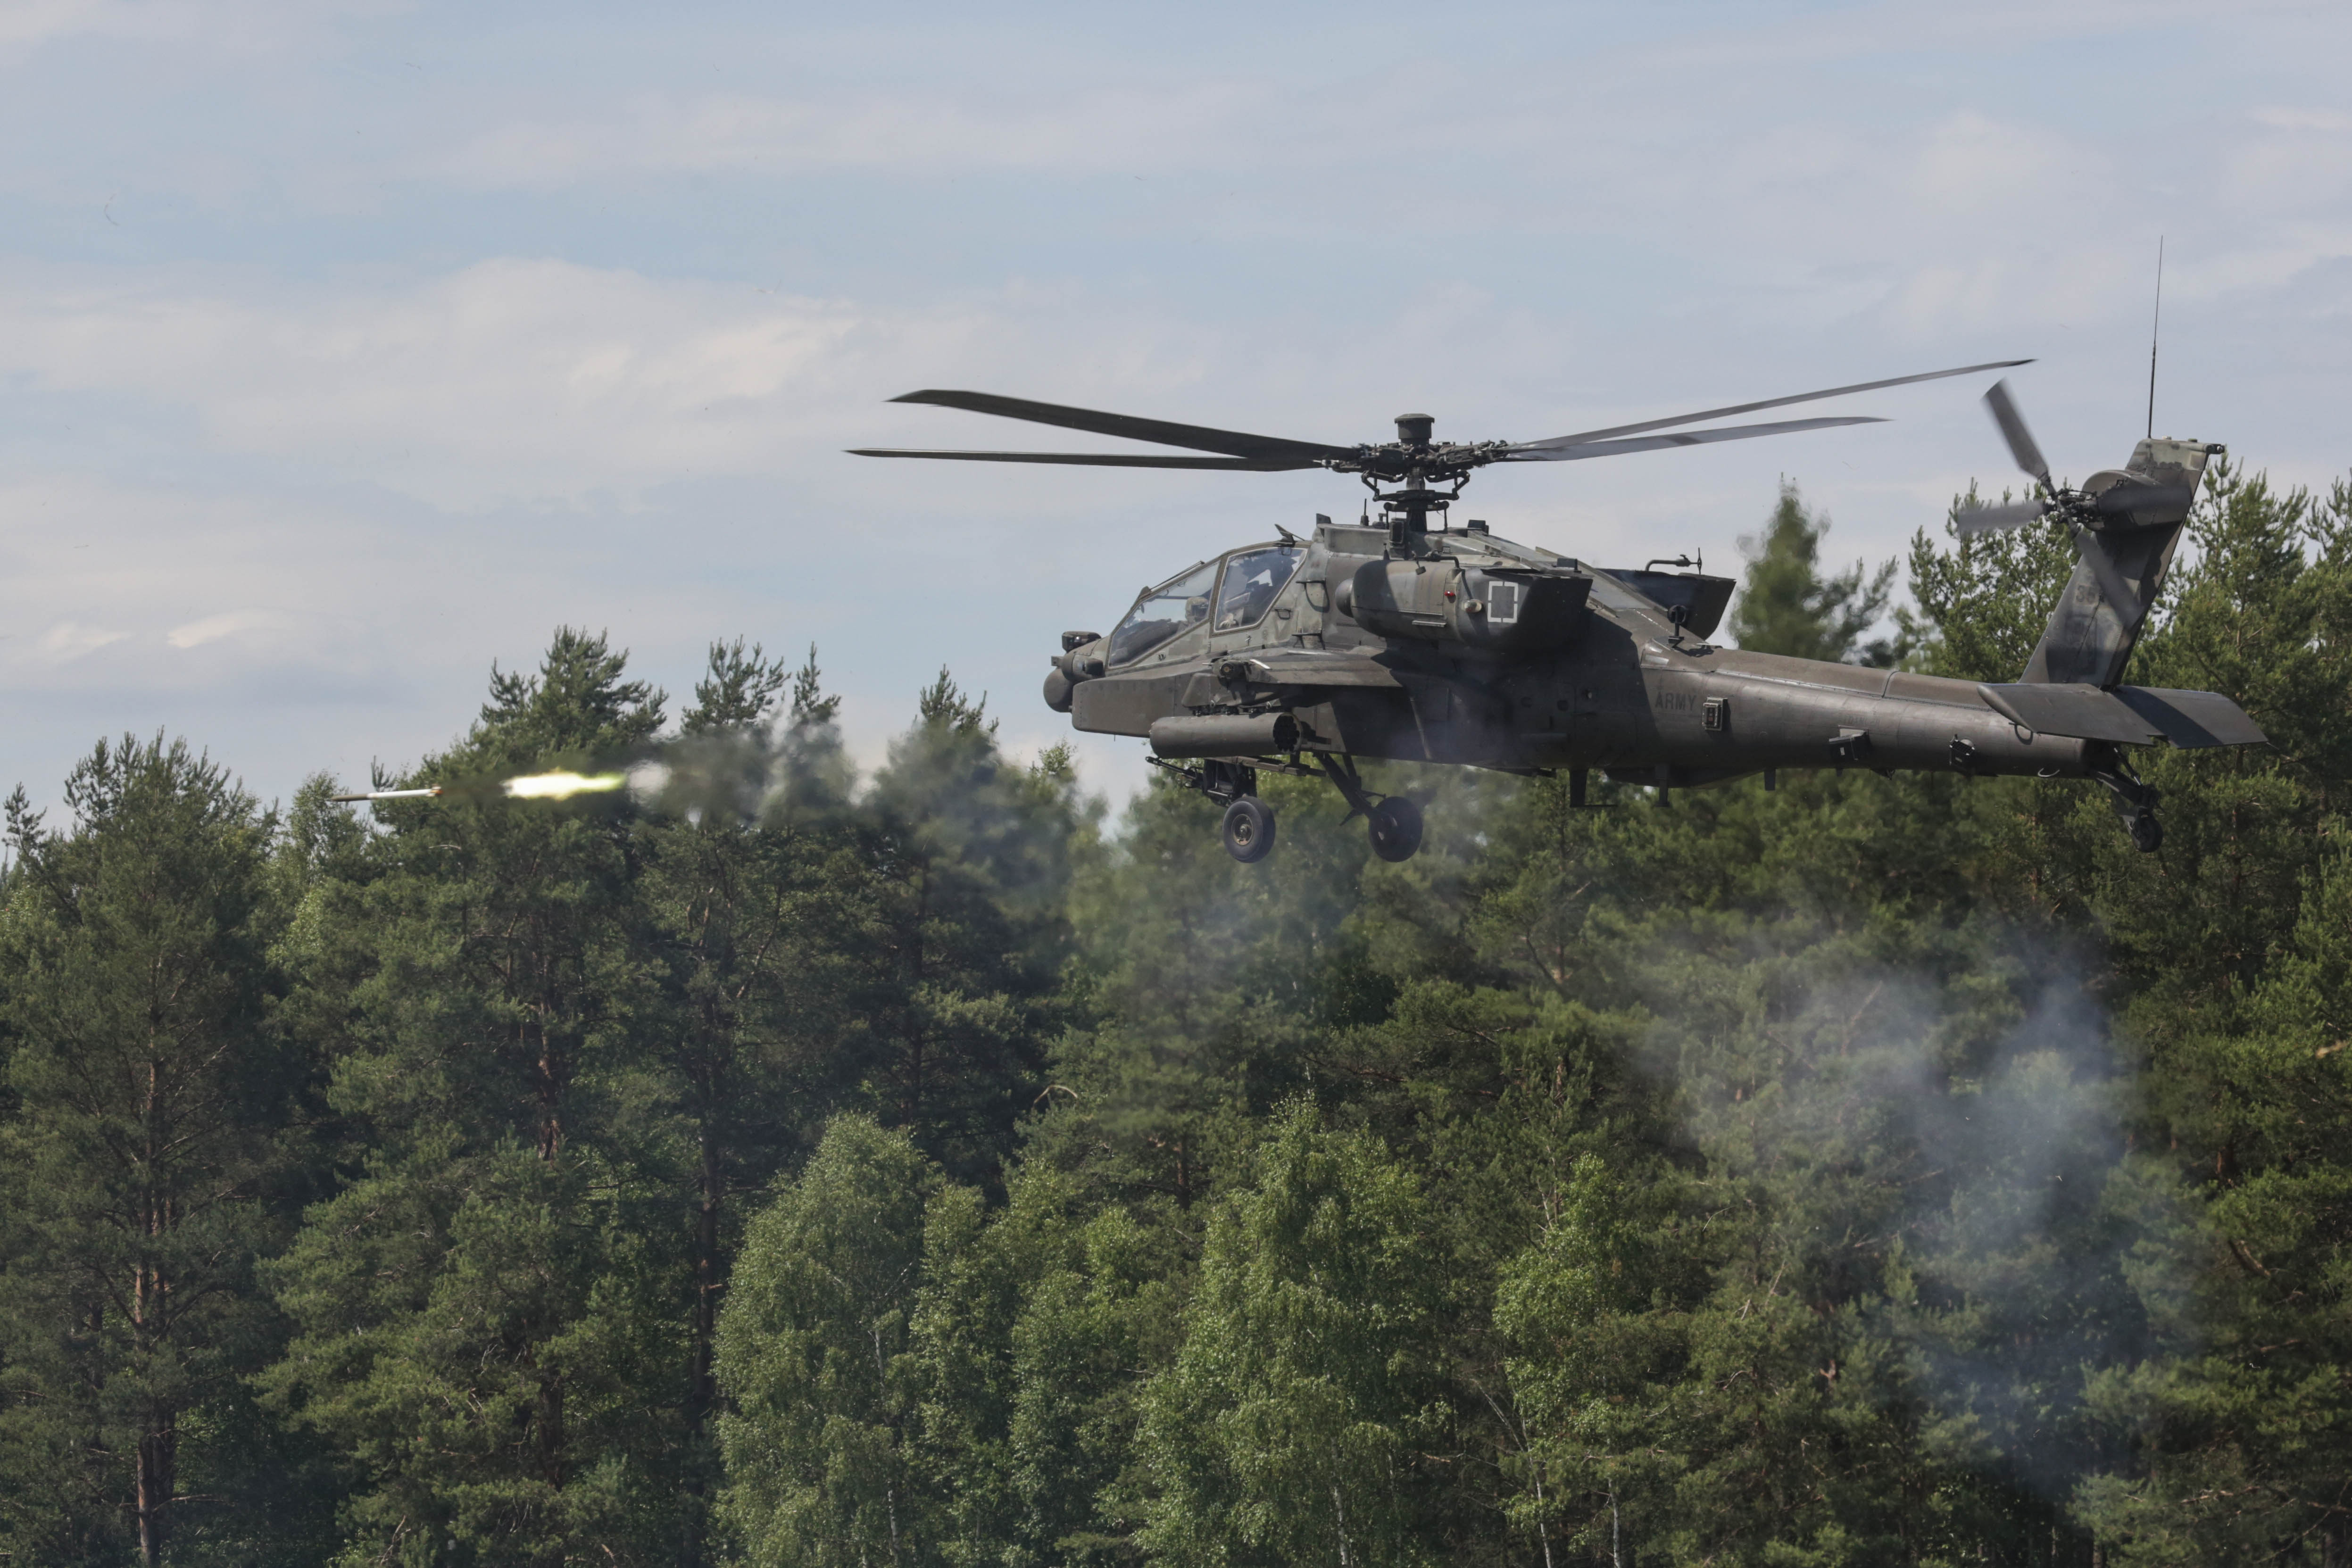 apache longbow helicopter with File U S  Soldiers Assigned To The 12th  Bat Aviation Brigade Fire On Targets From An Army Ah 64d Apache Longbow Helicopter During A  Bined Arms Live Fire Operation At The Grafenwoehr Training Area In Bavaria 140627 A Hj139 008 on Fokker 100 Cockpit also Photoshoot Apache Attack Helicopter With Bentleys And Lamborghinis furthermore Royalty Free Stock Photo Ch 47 Chinook Helicopter Image11260565 as well File U S  Soldiers assigned to the 12th  bat Aviation Brigade use an Army AH 64D Apache Longbow helicopter during a  bined arms live Fire operation at the Grafenwoehr Training Area in Bavaria  Germany  June 27th 140627 A HJ139 009 moreover Boeing Ah 64 Apache.